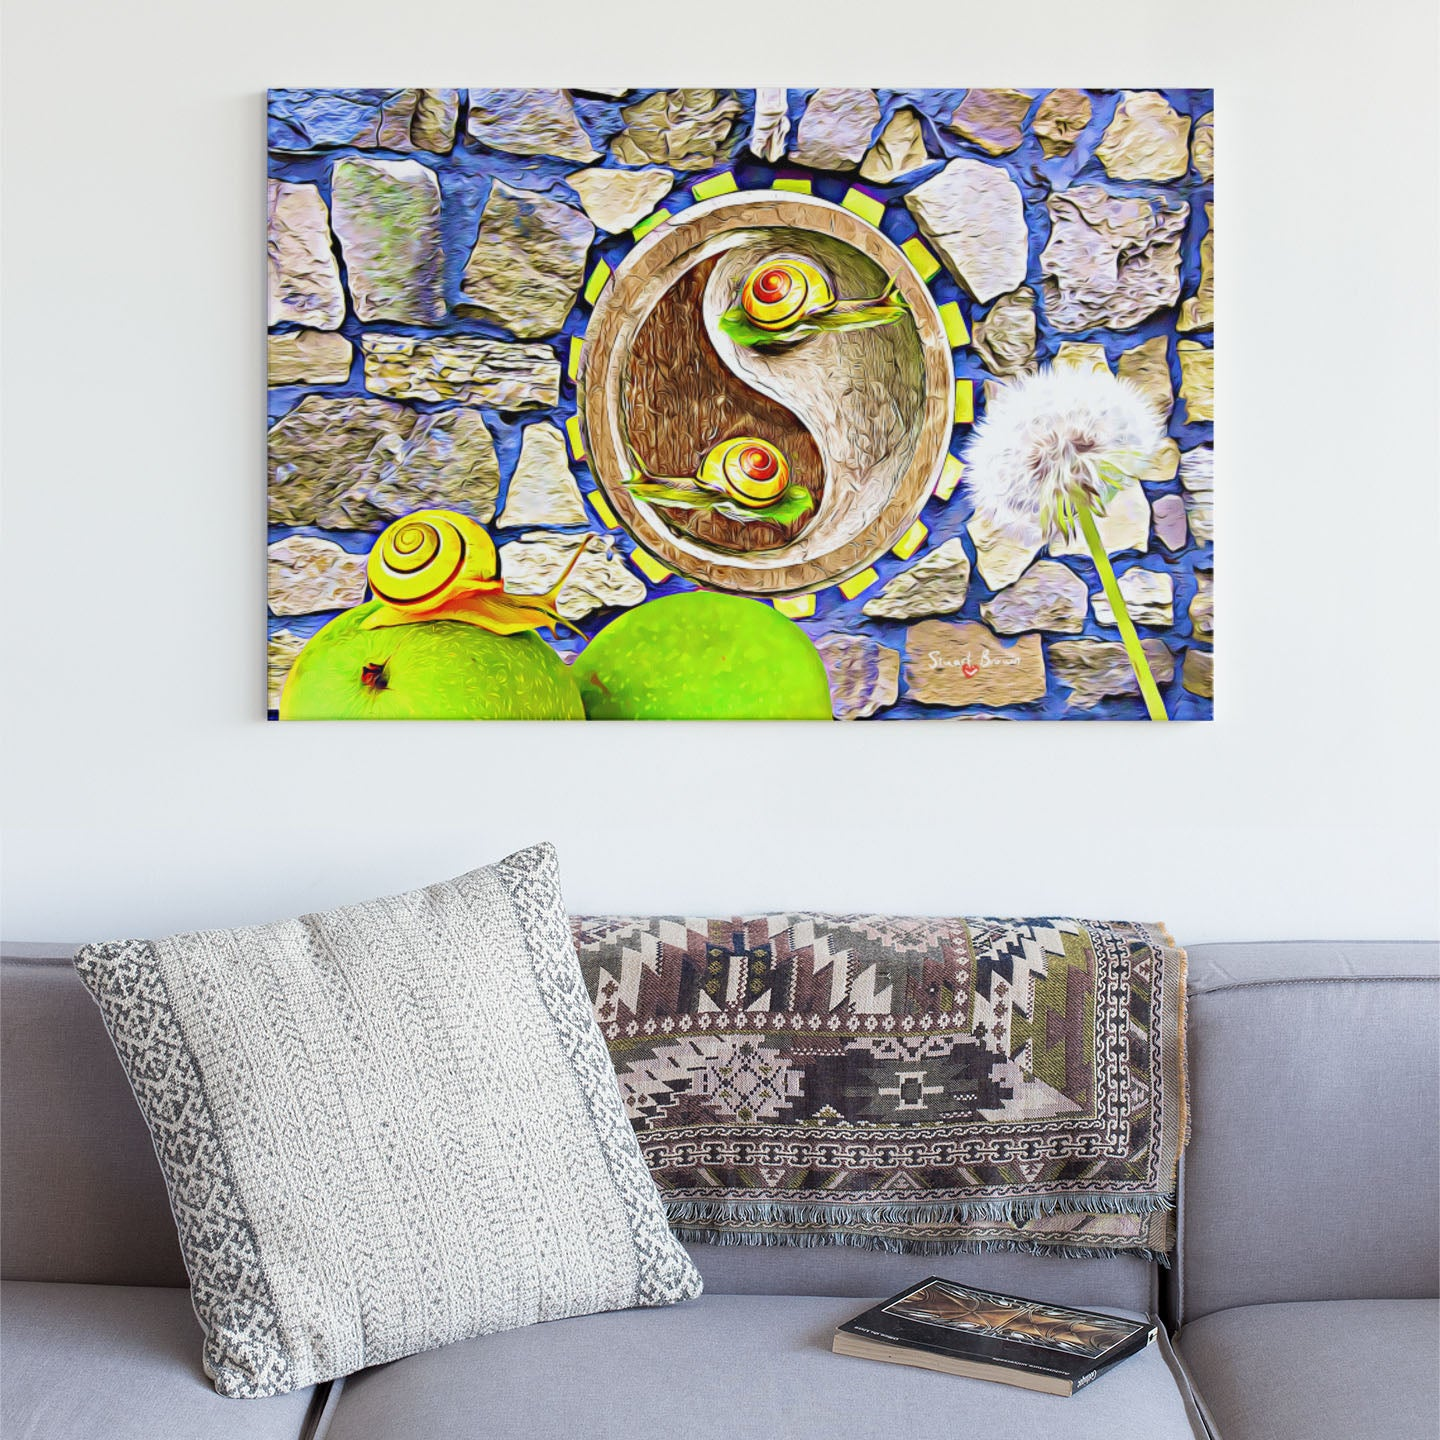 snail art the wisdom of snails canvas art print